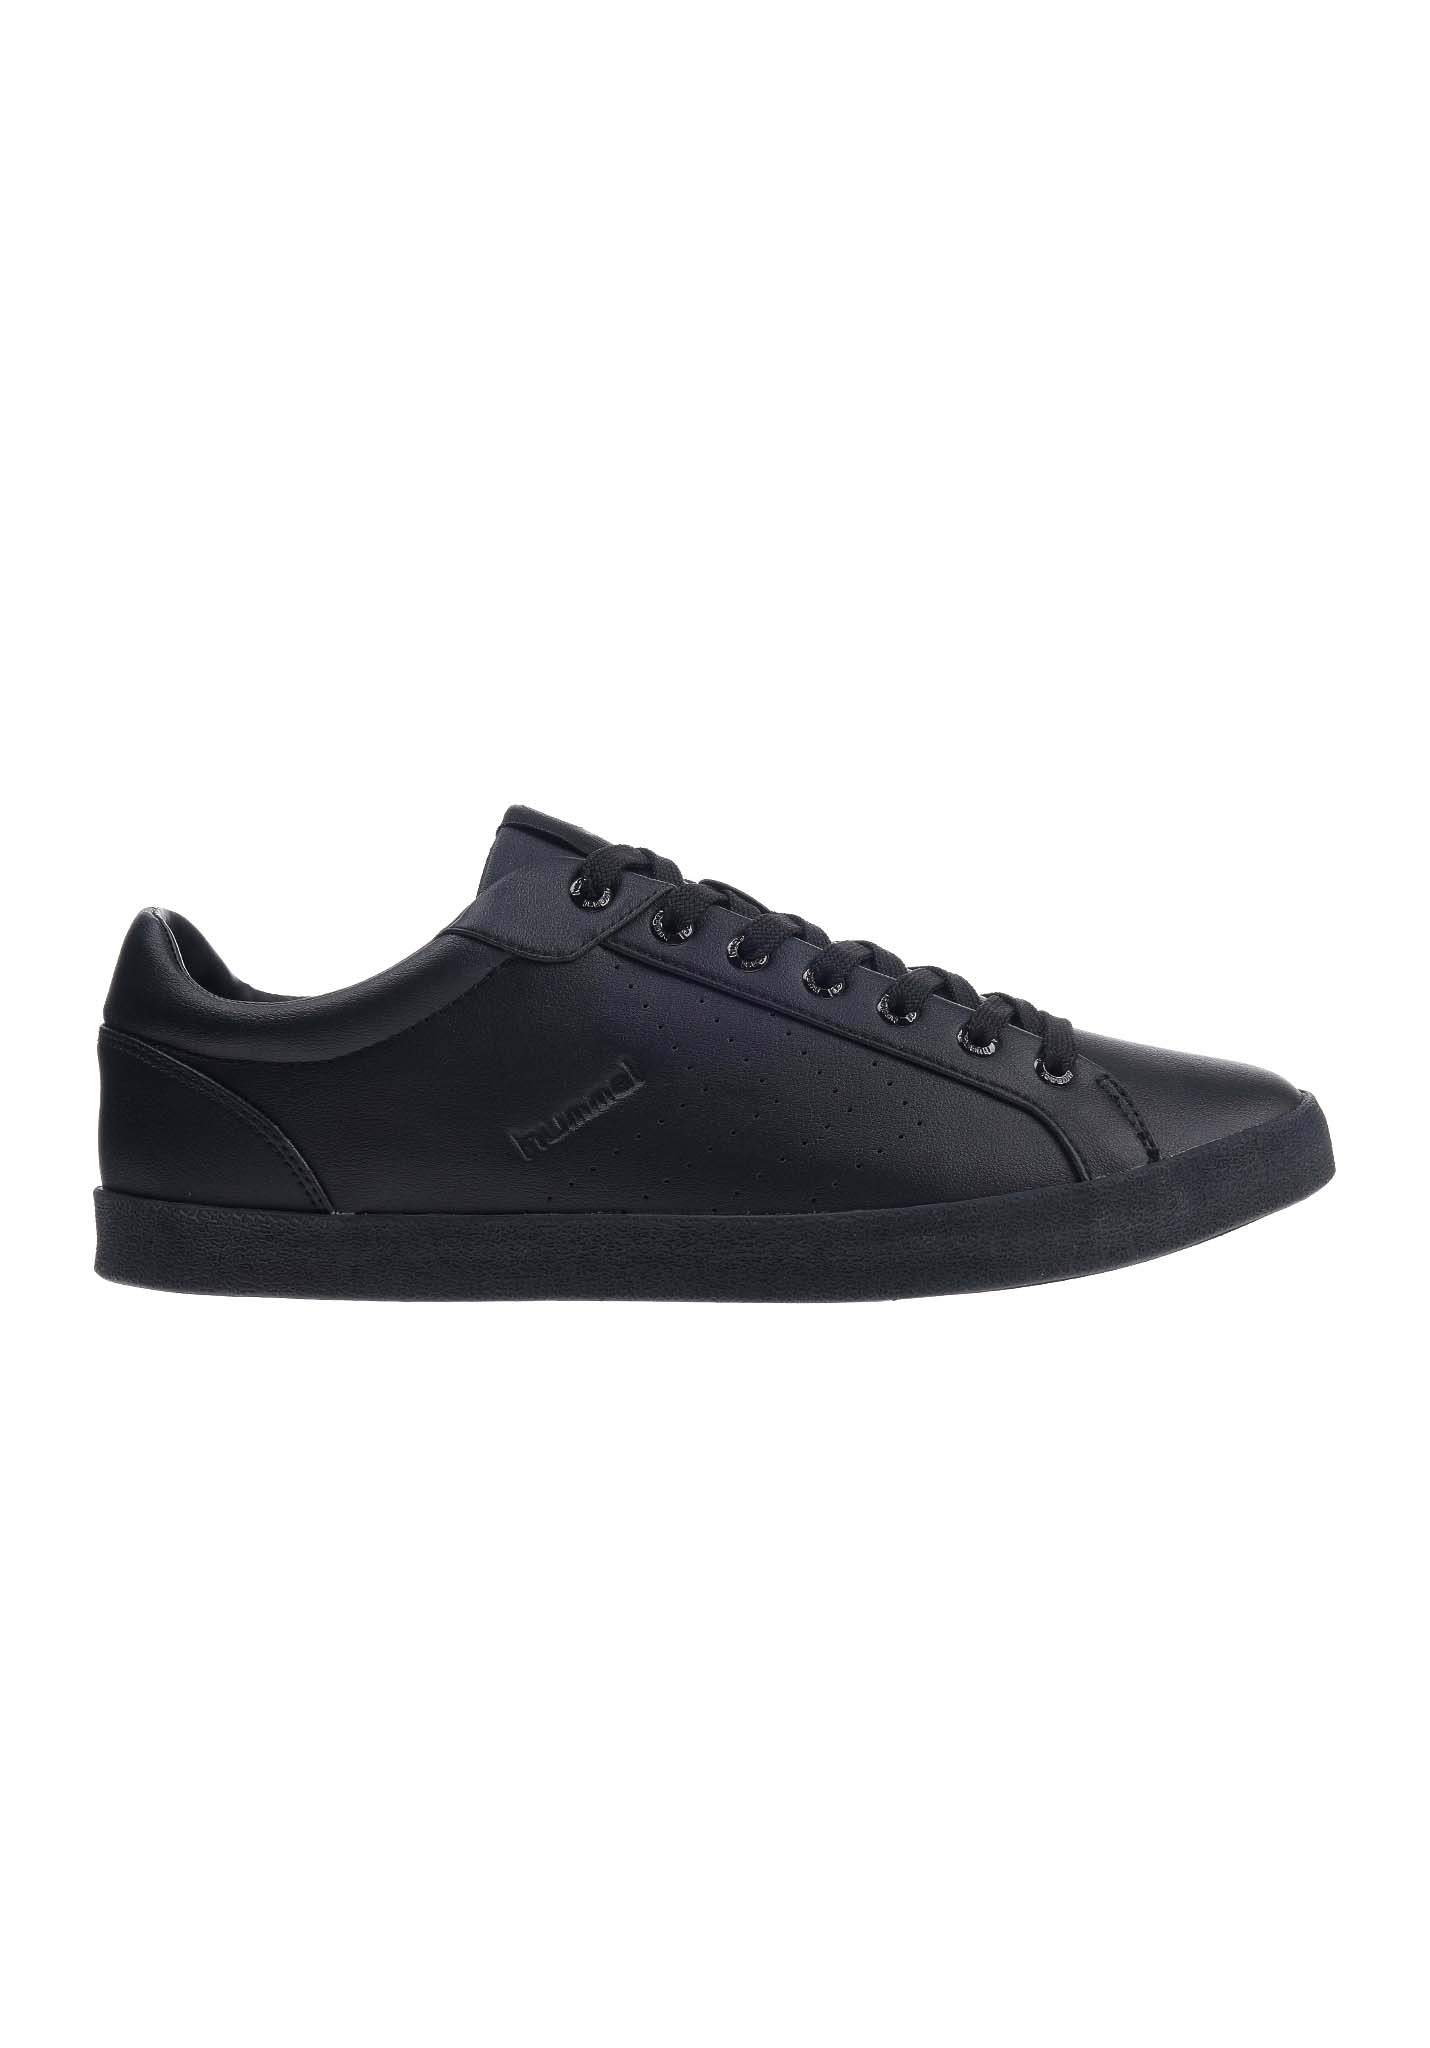 neu hummel deuce court tonal herren damen sneaker turnschuhe freizeit schuhe ebay. Black Bedroom Furniture Sets. Home Design Ideas